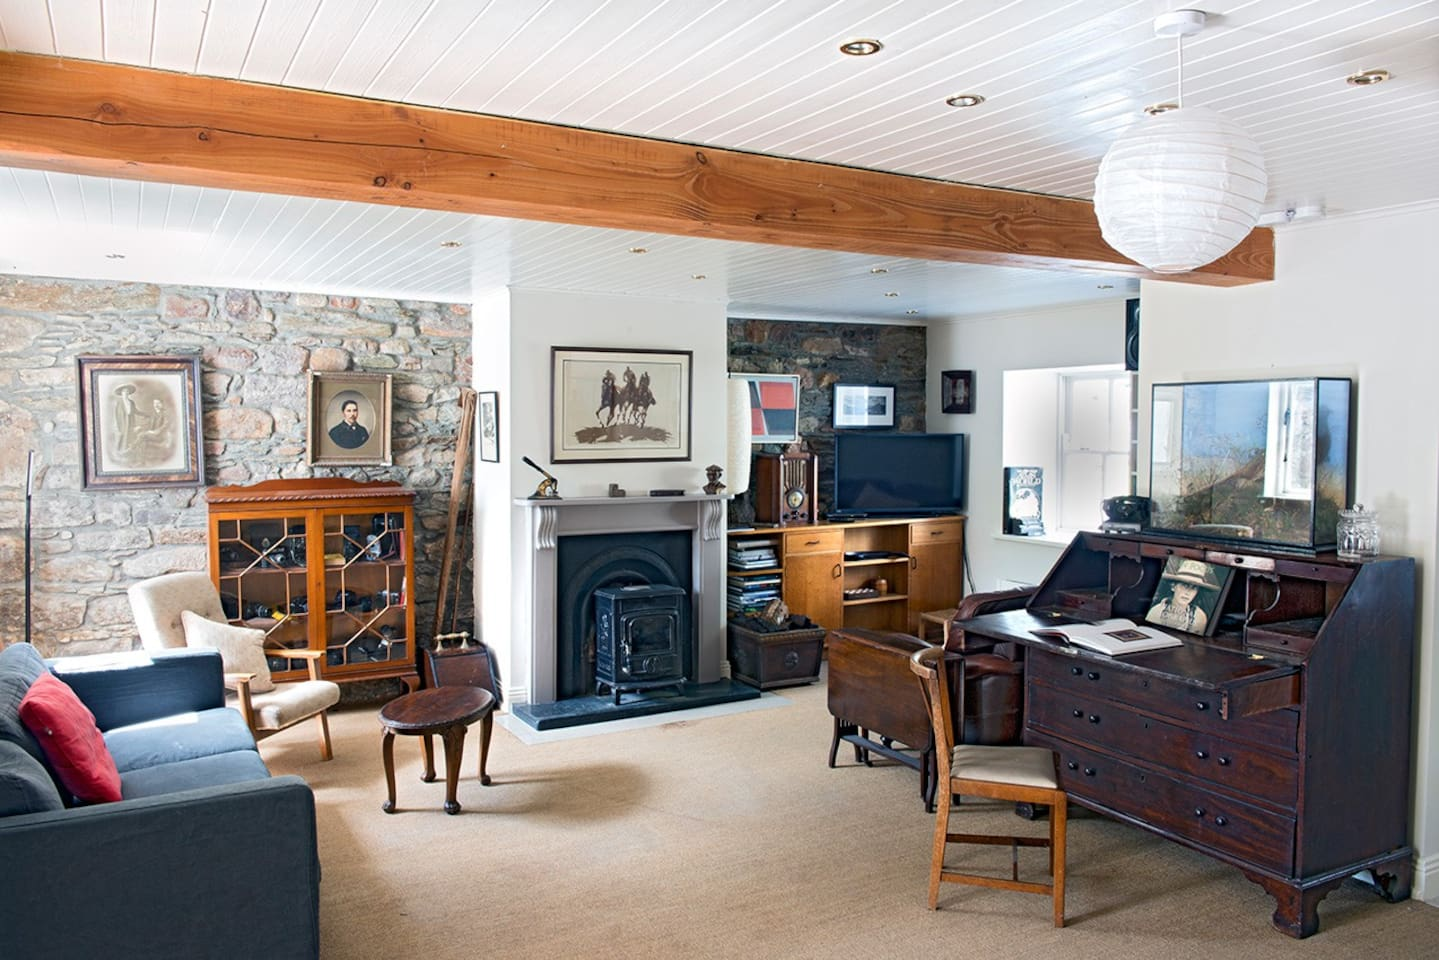 Main Room off kitchen, a really pleasant living space.